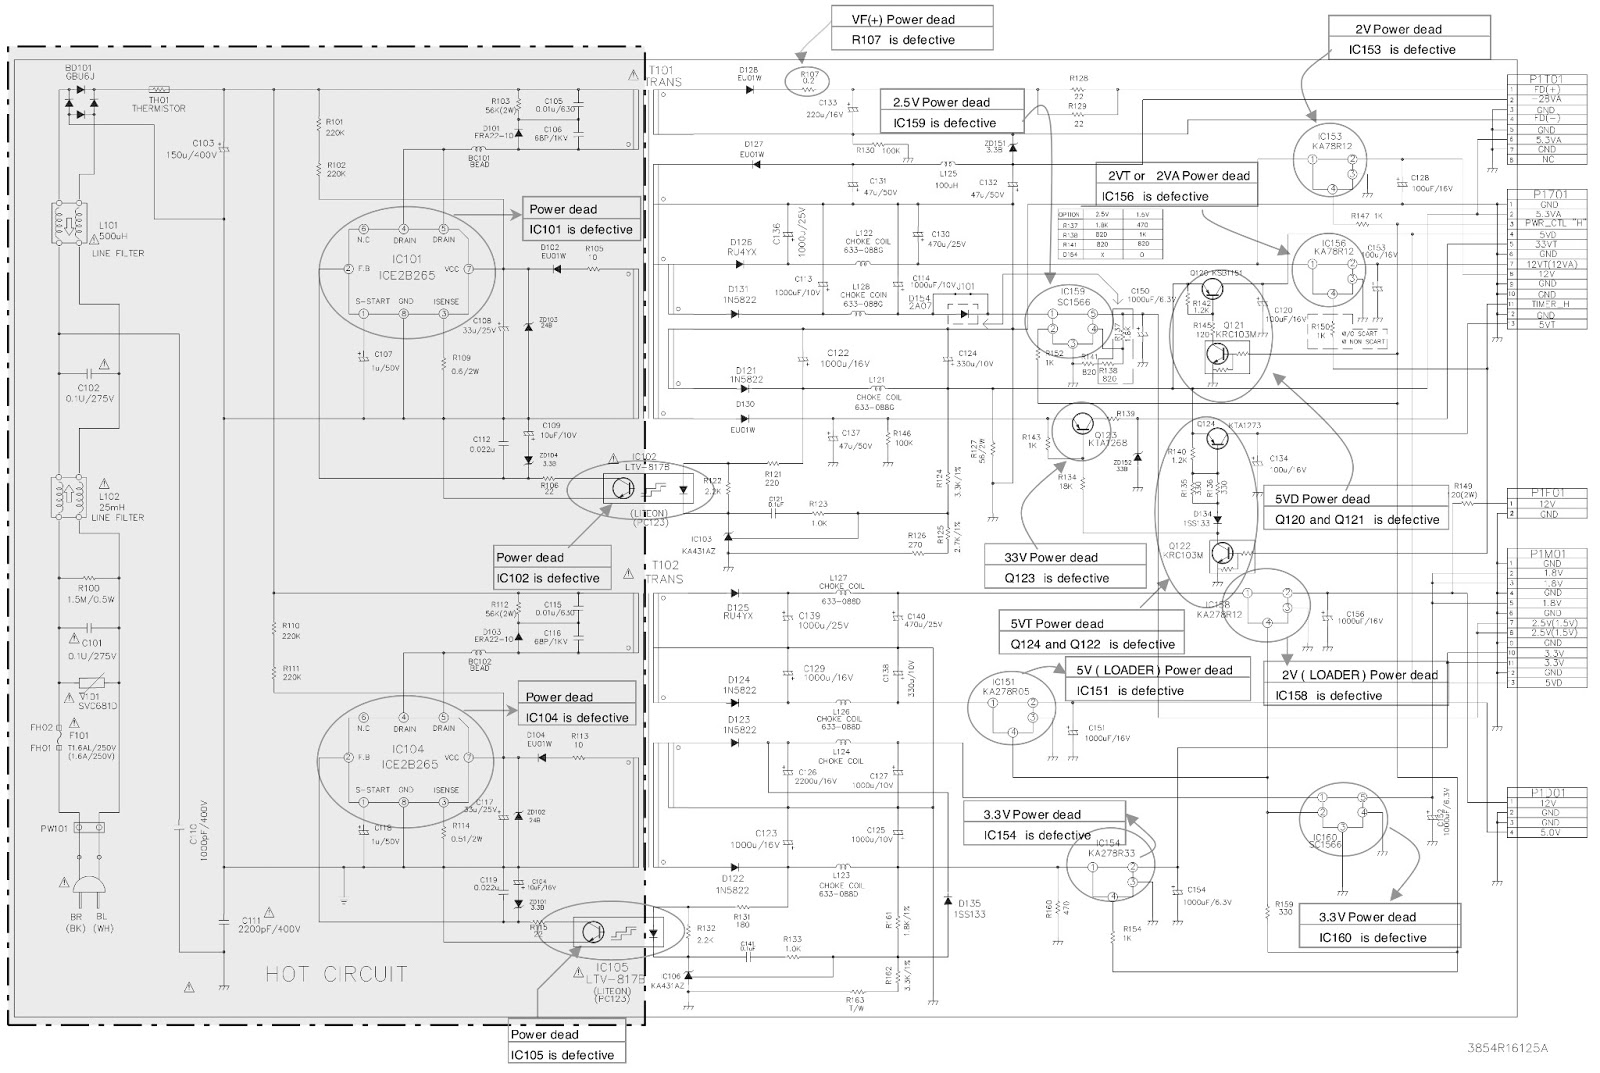 power supply schematic fault location defective components click on picture to enlarge  [ 1600 x 1073 Pixel ]